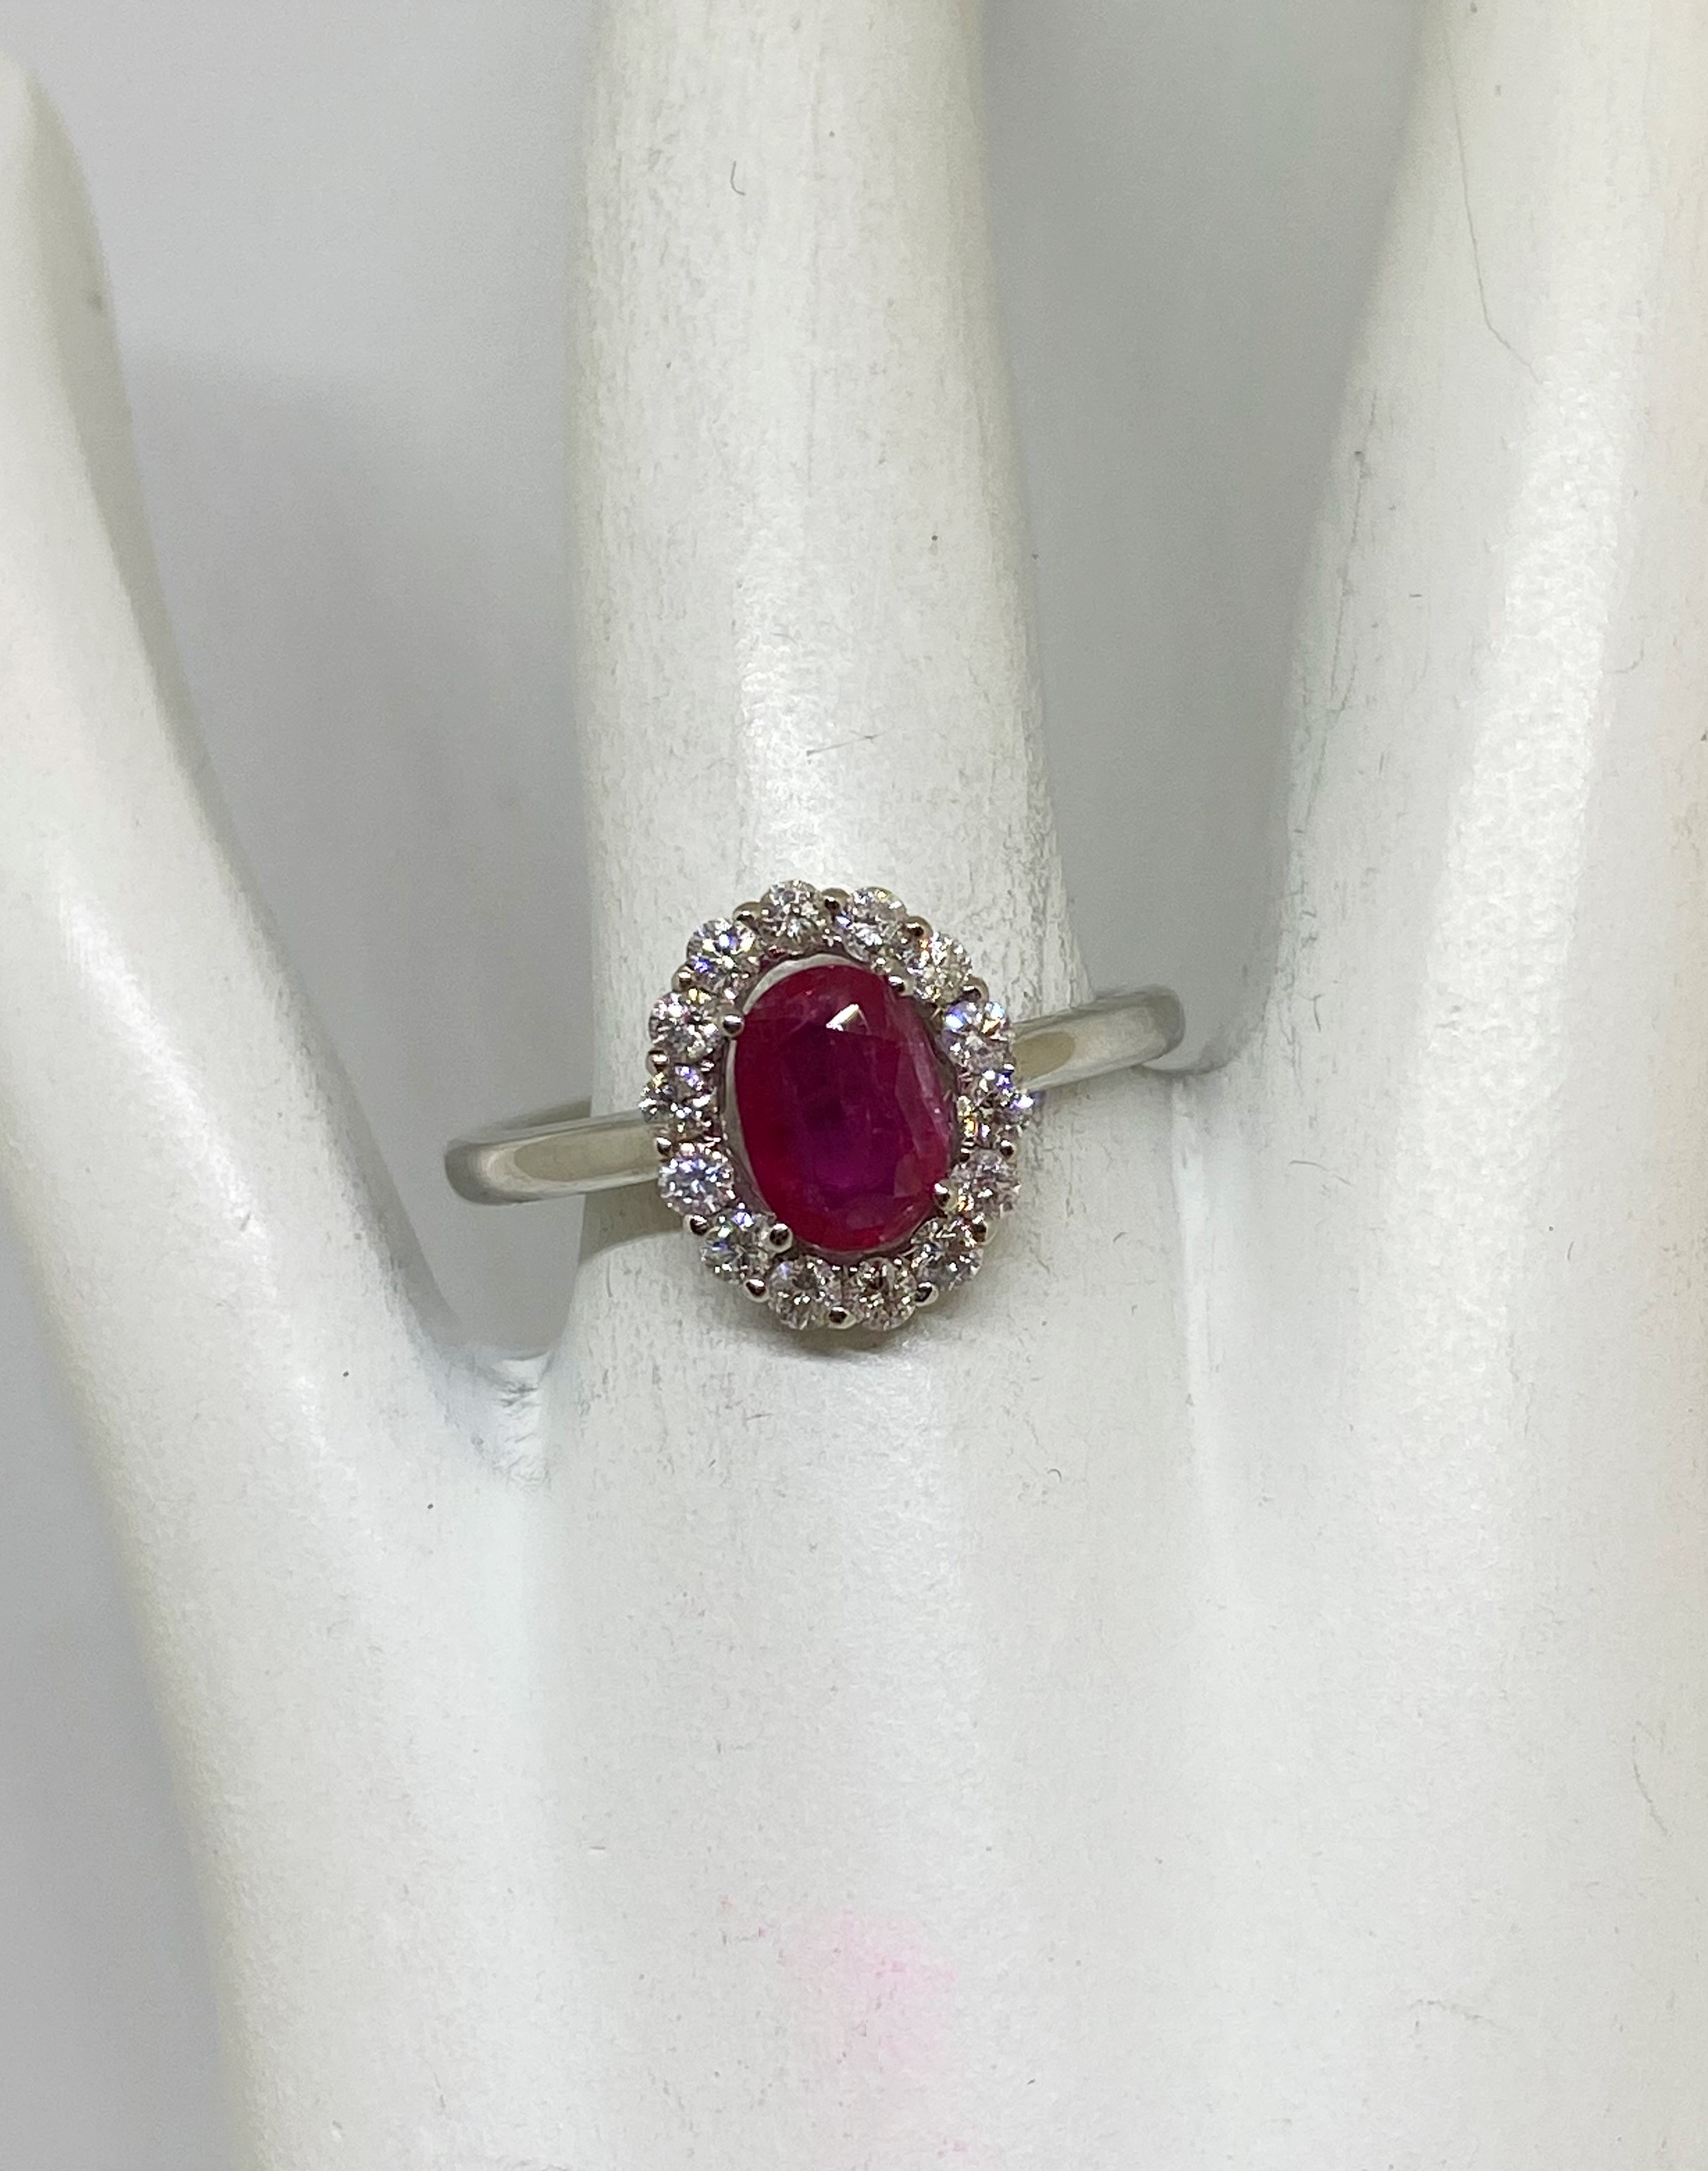 Almost 1 Carat Ruby And Diamond Ring